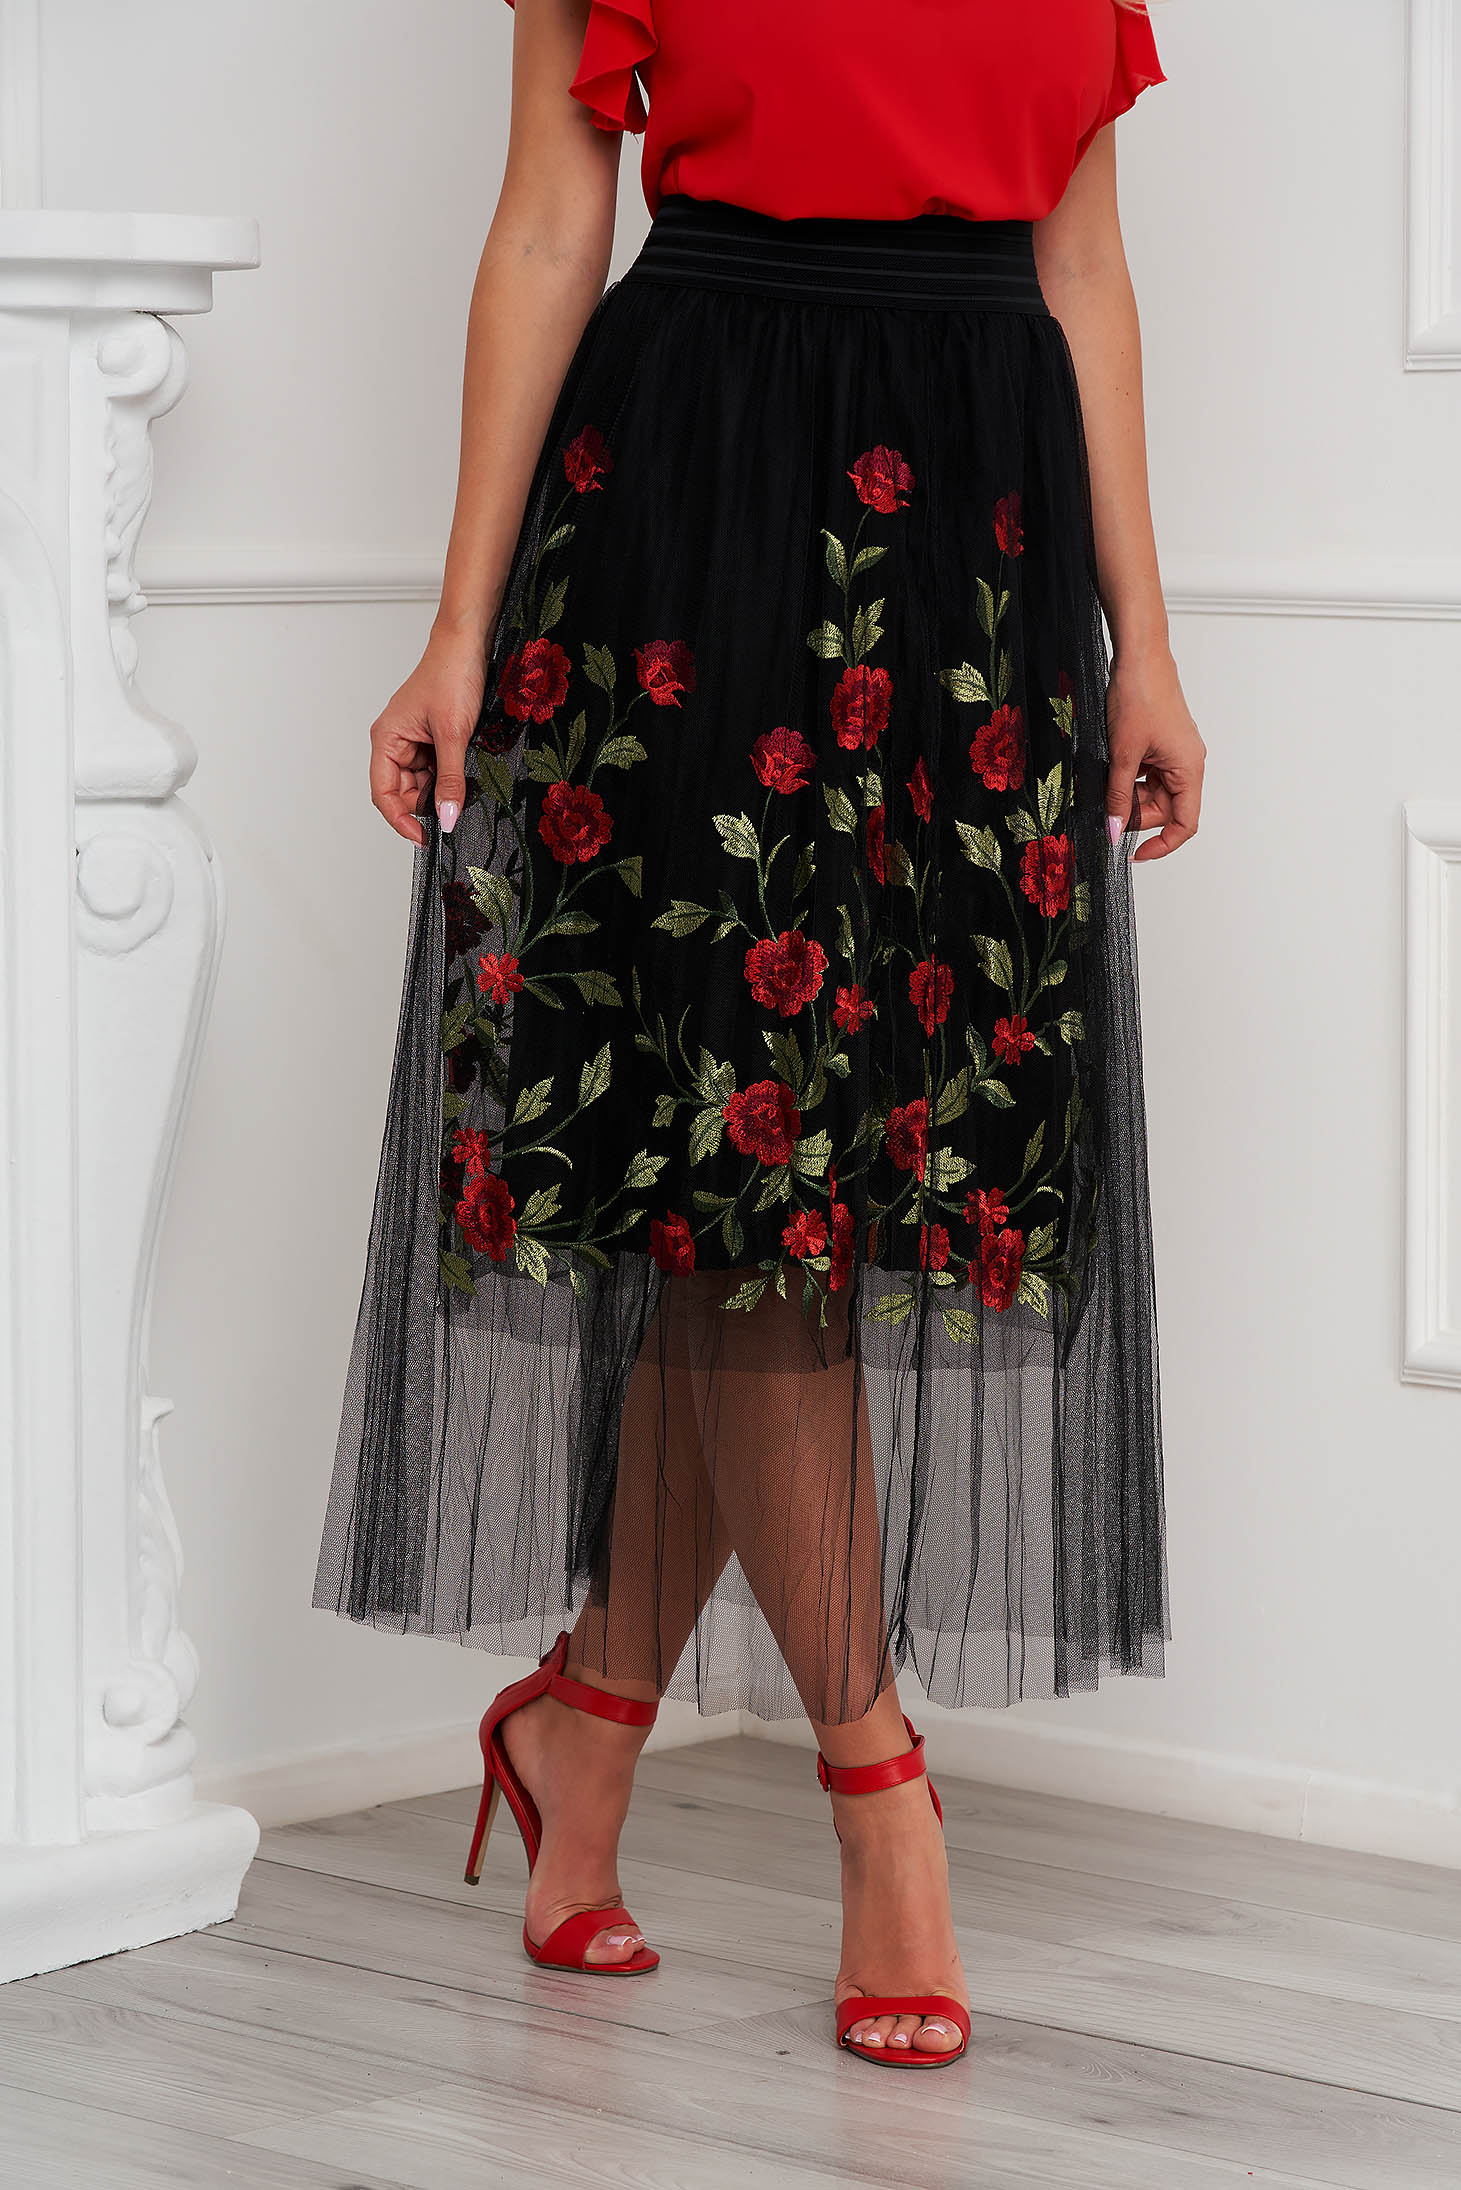 SunShine black skirt casual embroidered from tulle with inside lining high waisted